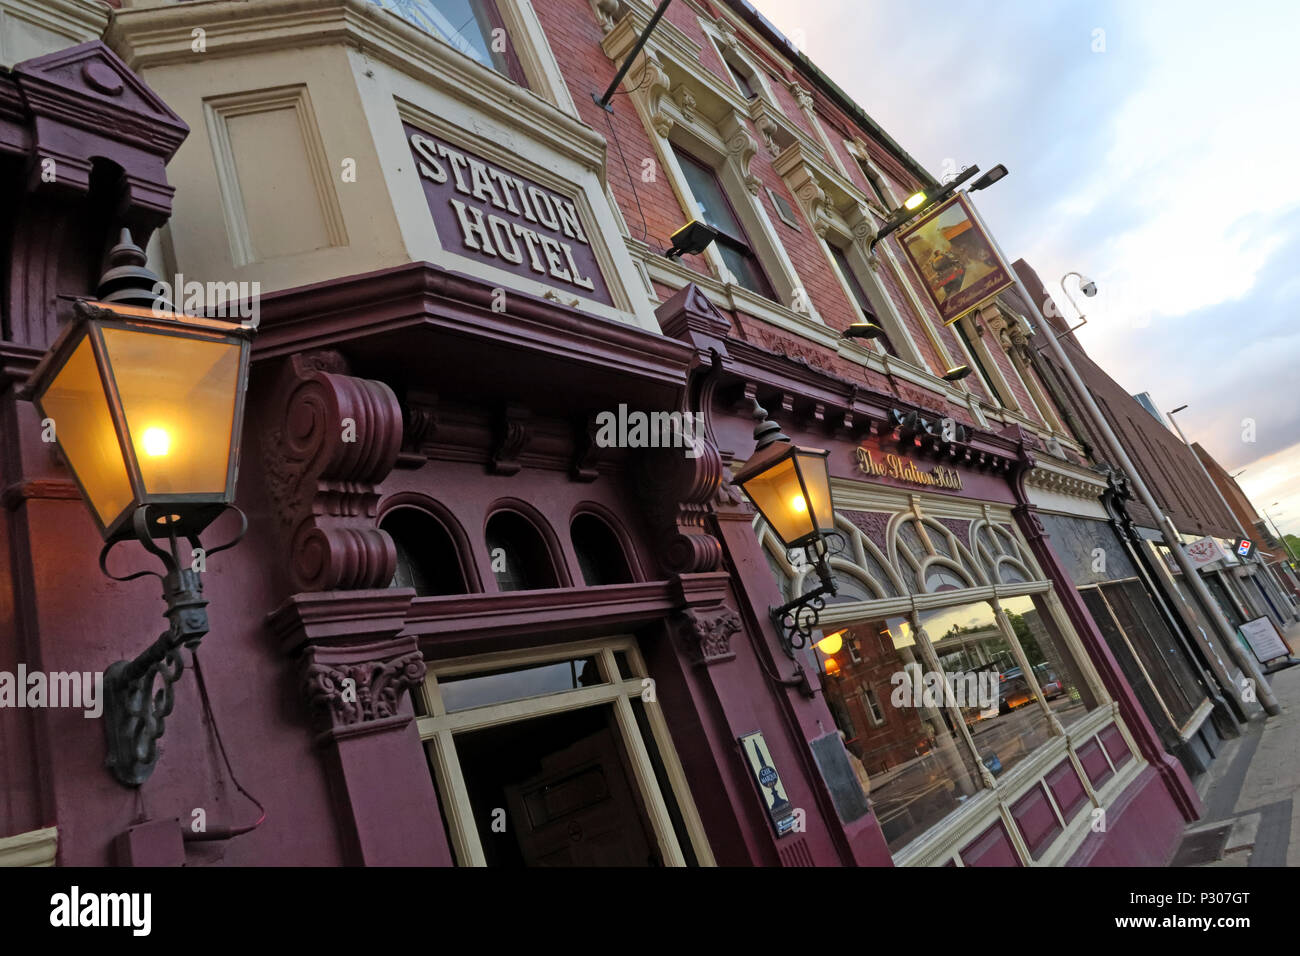 GoTonysmith,@HotpixUK,Trafford,Cheshire,town,centre,shopping,retail,evening,lamp,lamps,sign,Manchester,North